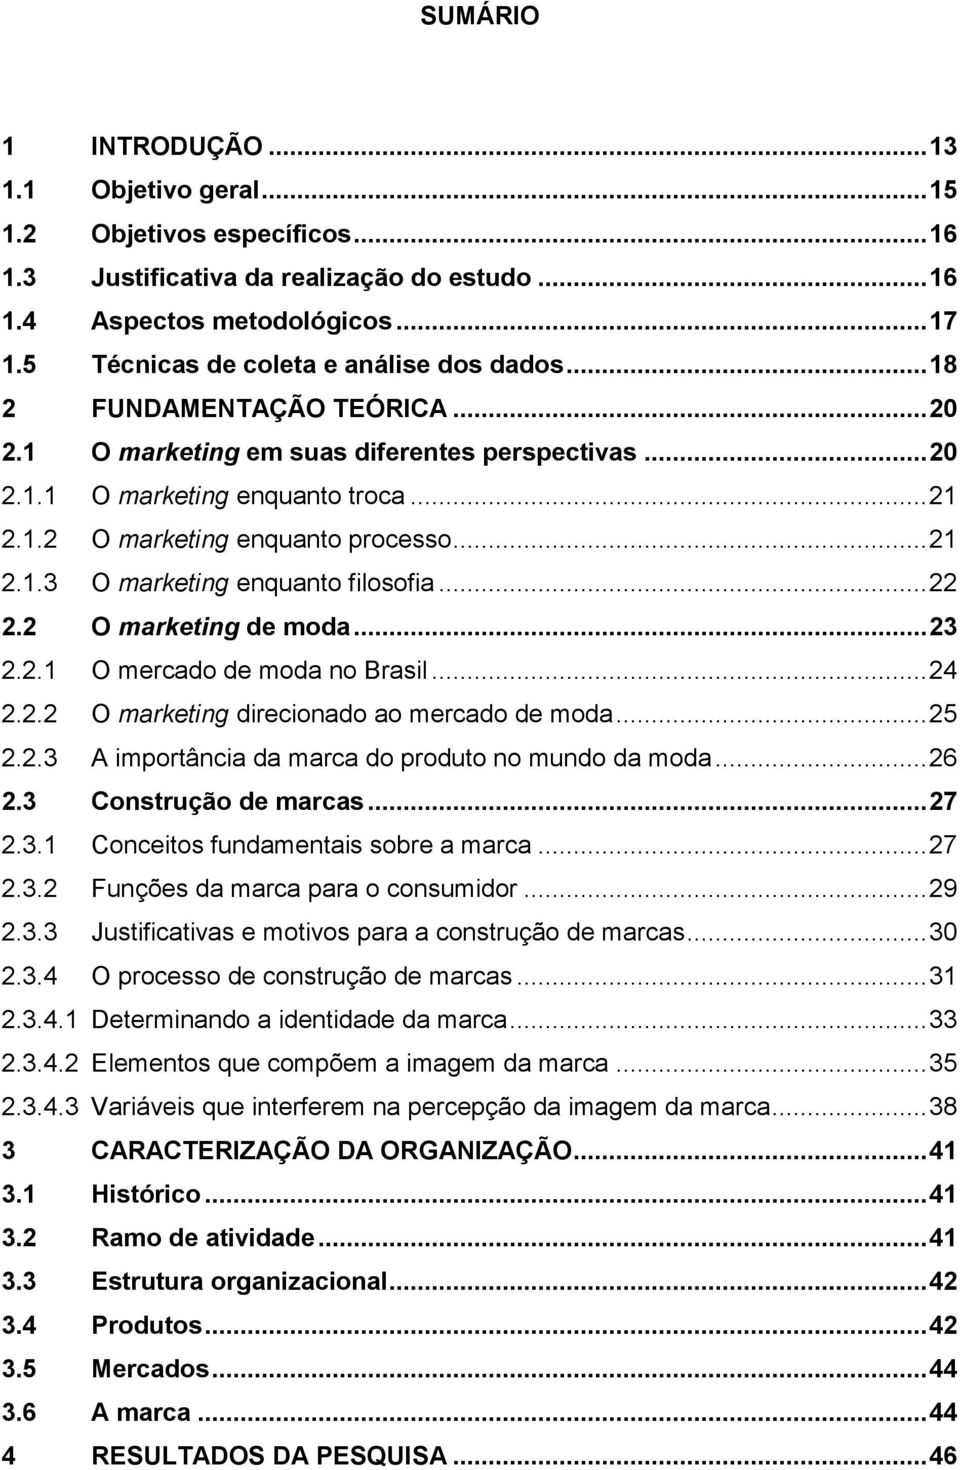 .. 21 2.1.3 O marketing enquanto filosofia... 22 2.2 O marketing de moda... 23 2.2.1 O mercado de moda no Brasil... 24 2.2.2 O marketing direcionado ao mercado de moda... 25 2.2.3 A importância da marca do produto no mundo da moda.